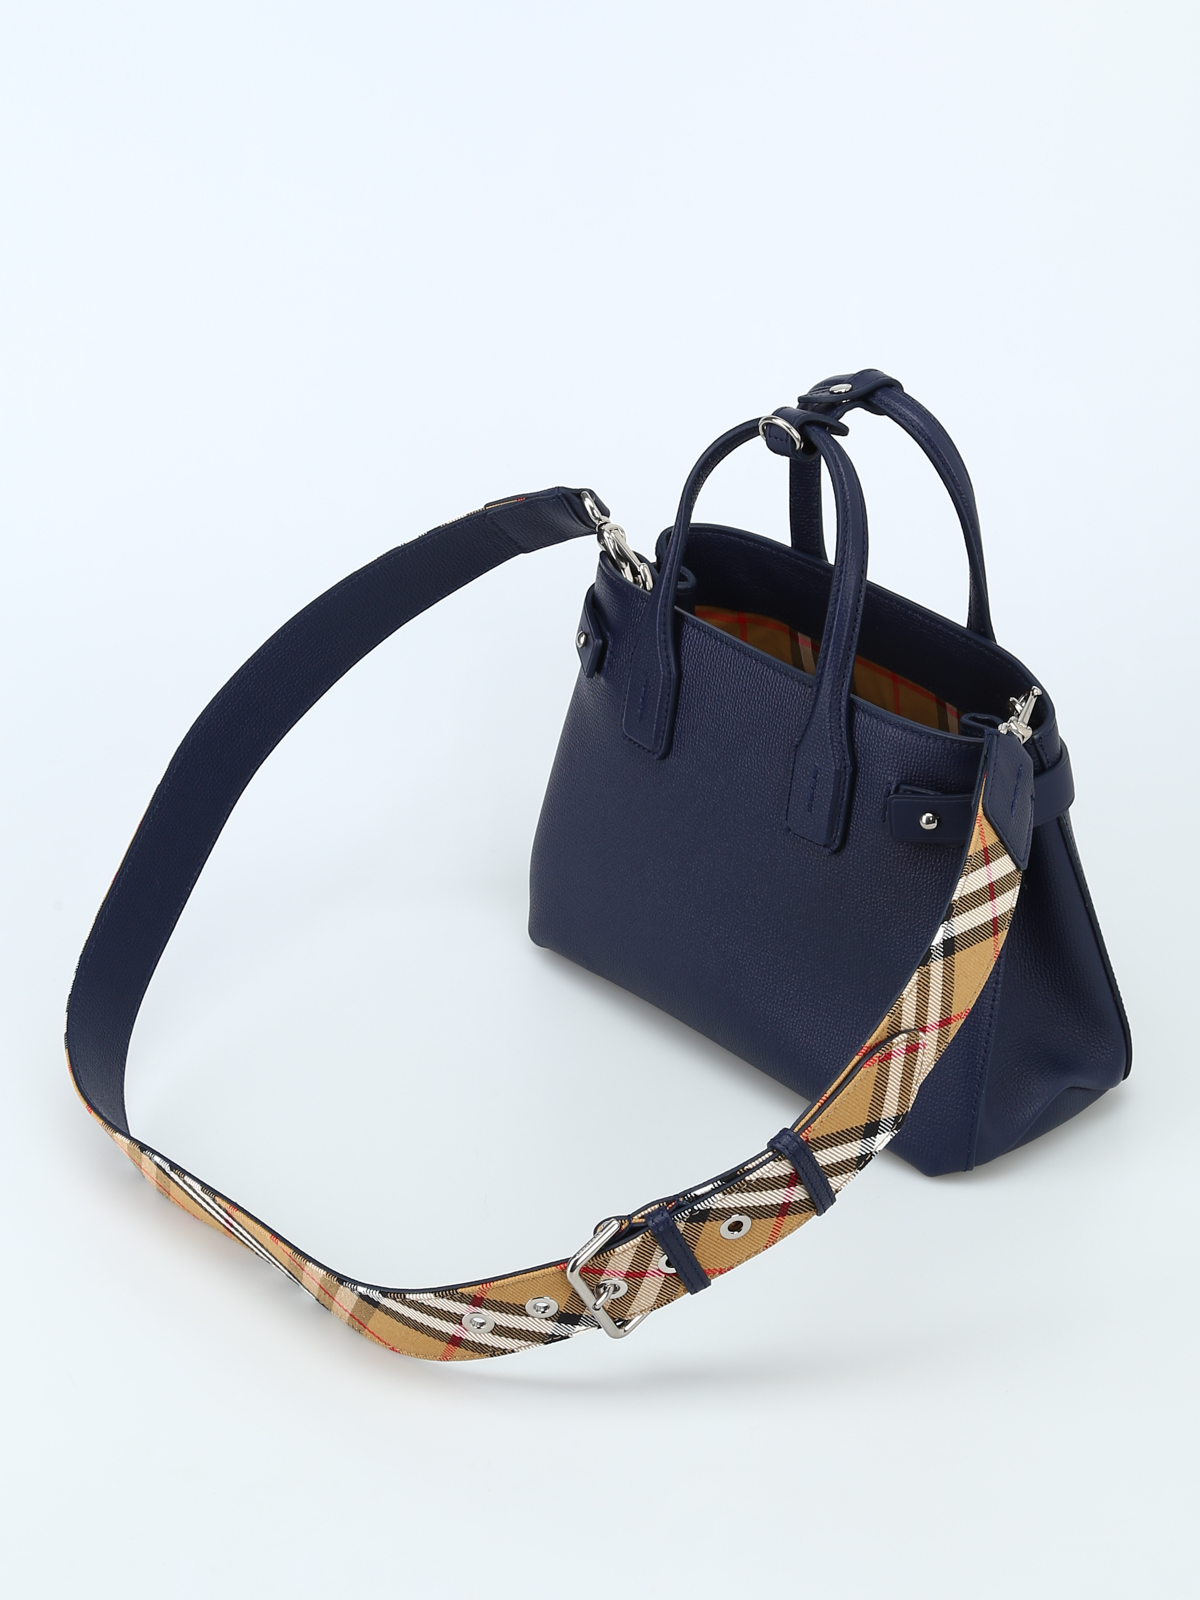 6dc1ac63db18 iKRIX BURBERRY  cross body bags - The Small Banner regency blue leather bag